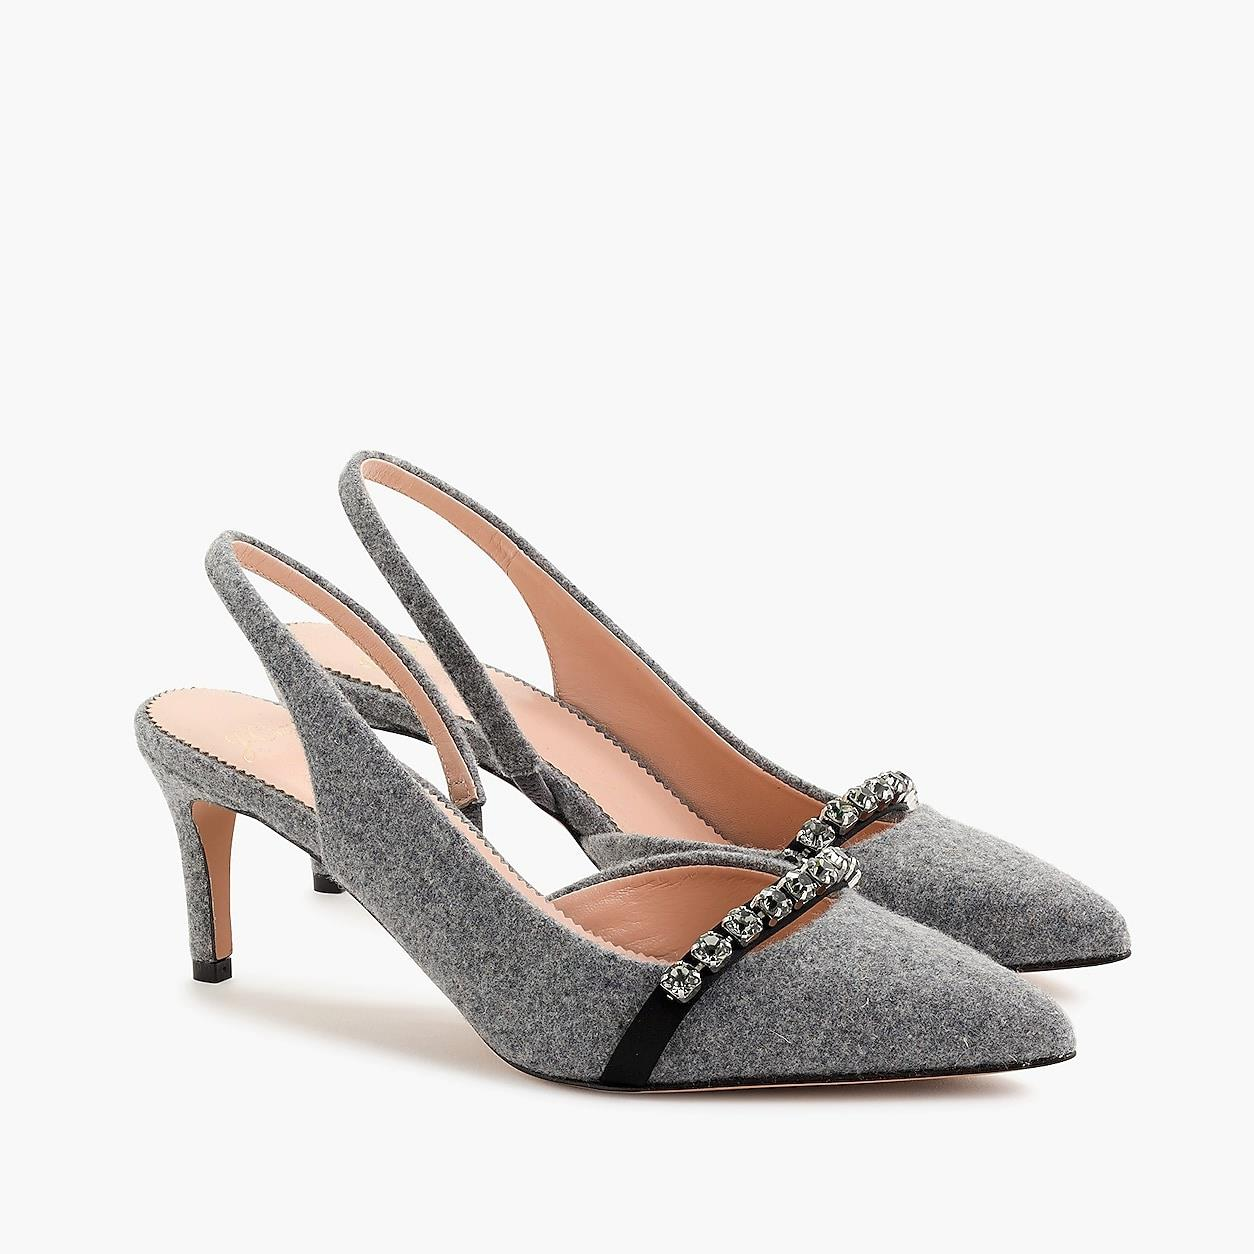 Colette Slingback D'orsay Pumps In Wool-Crystal